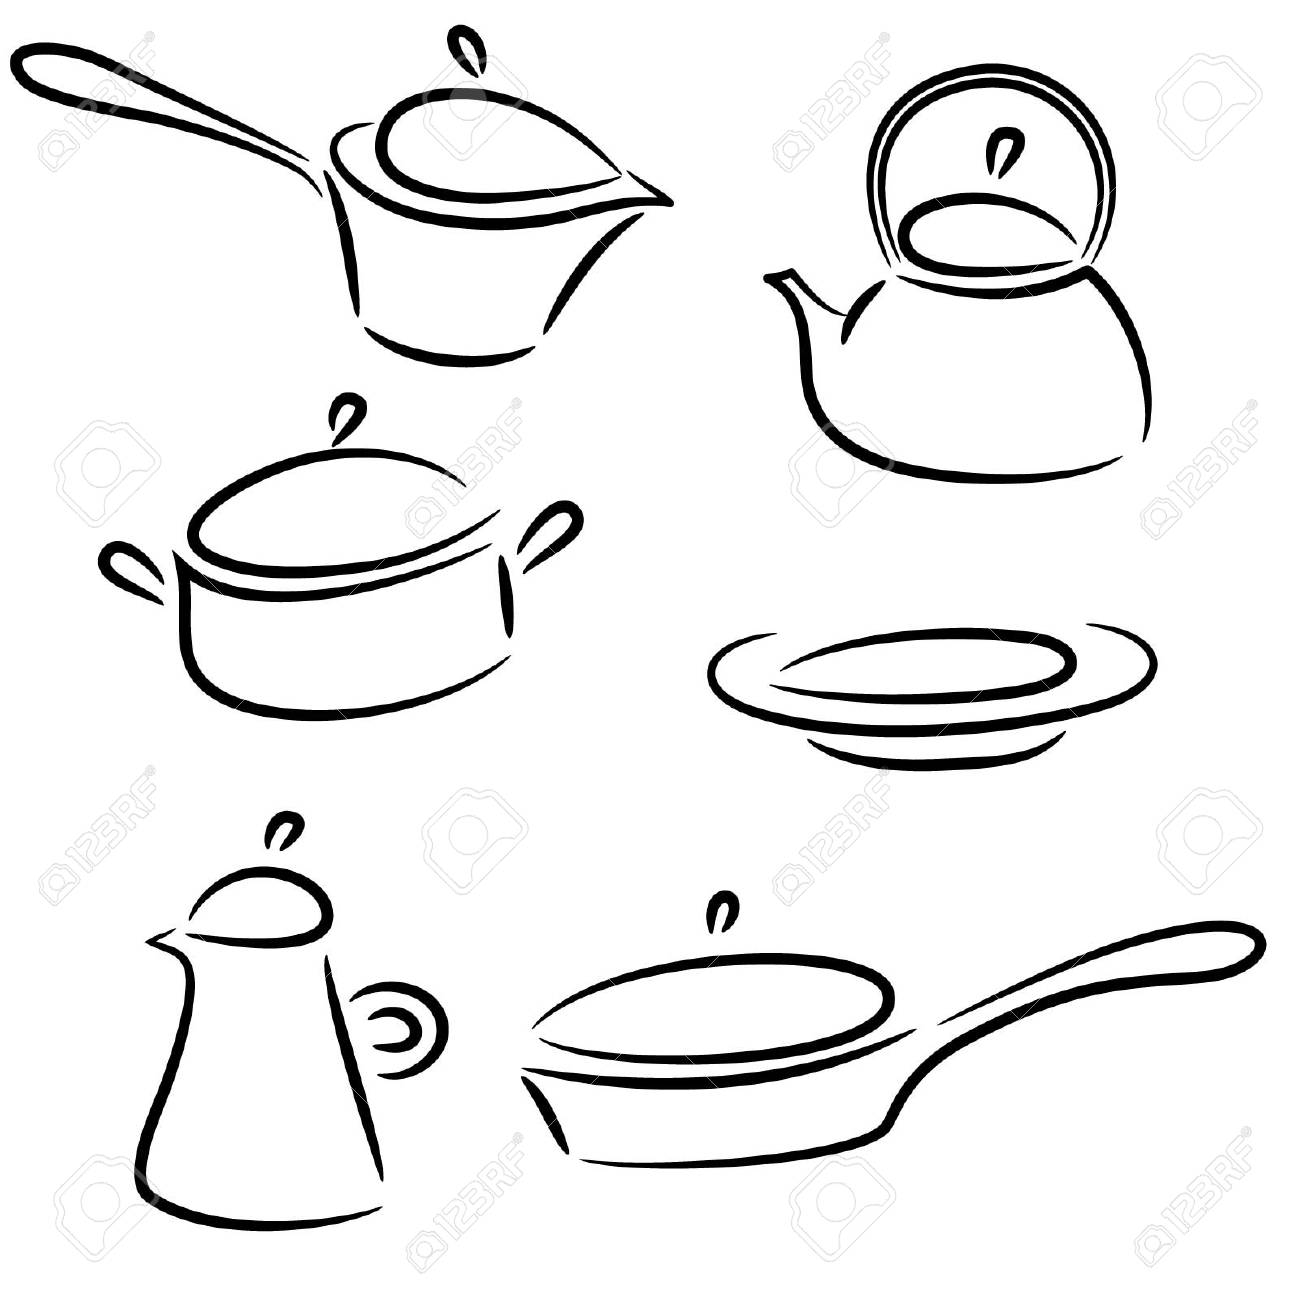 illustration with collection of ware isolated on white background Stock Vector - 14472881